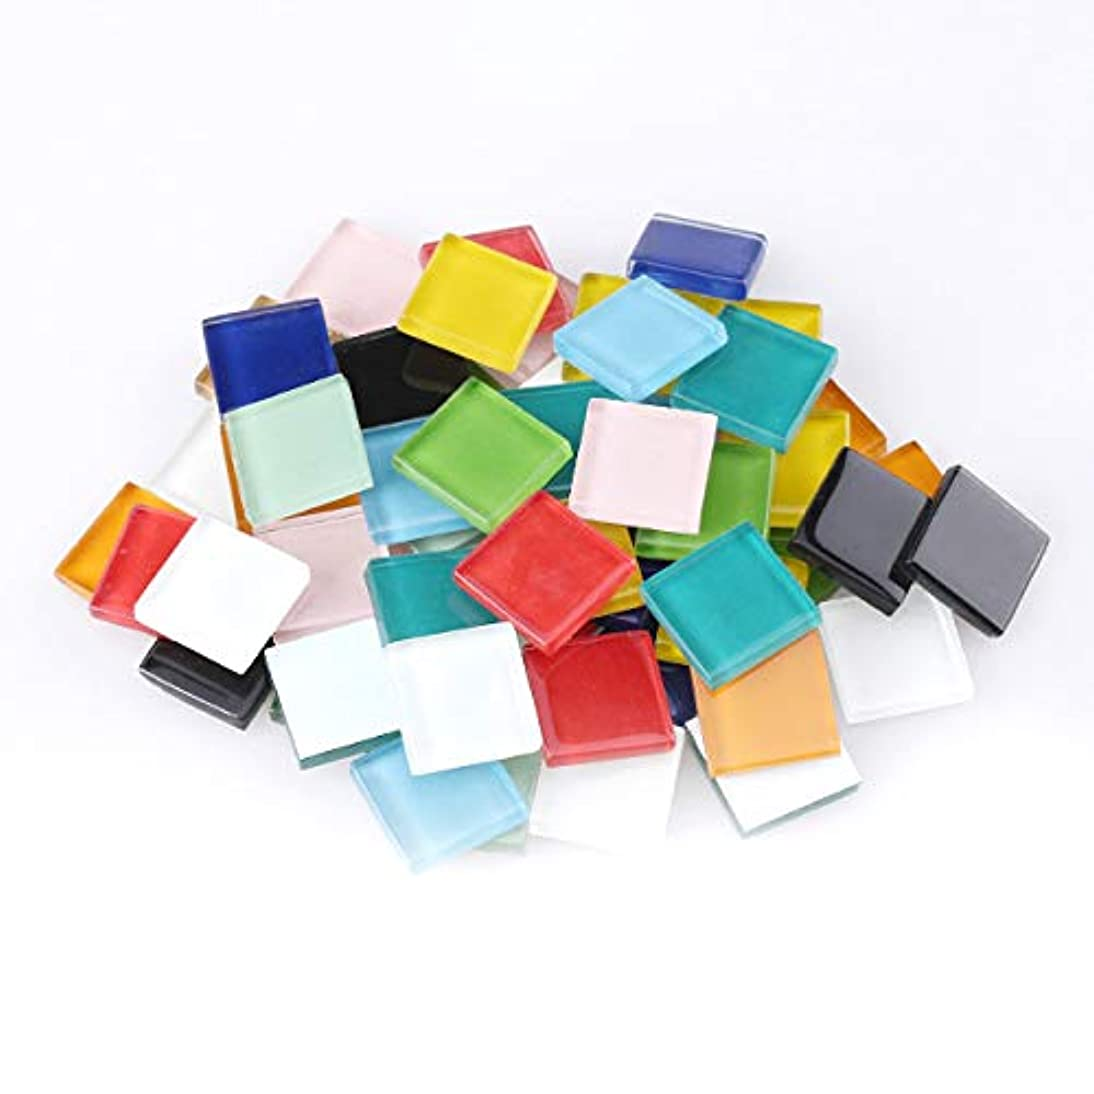 UW Pieces Mosaic Tile Square Shape Assortment with Various Color Perfect Match in Artcraft Making and Home Decorations(20mm per Piece,1000g/2.2lb